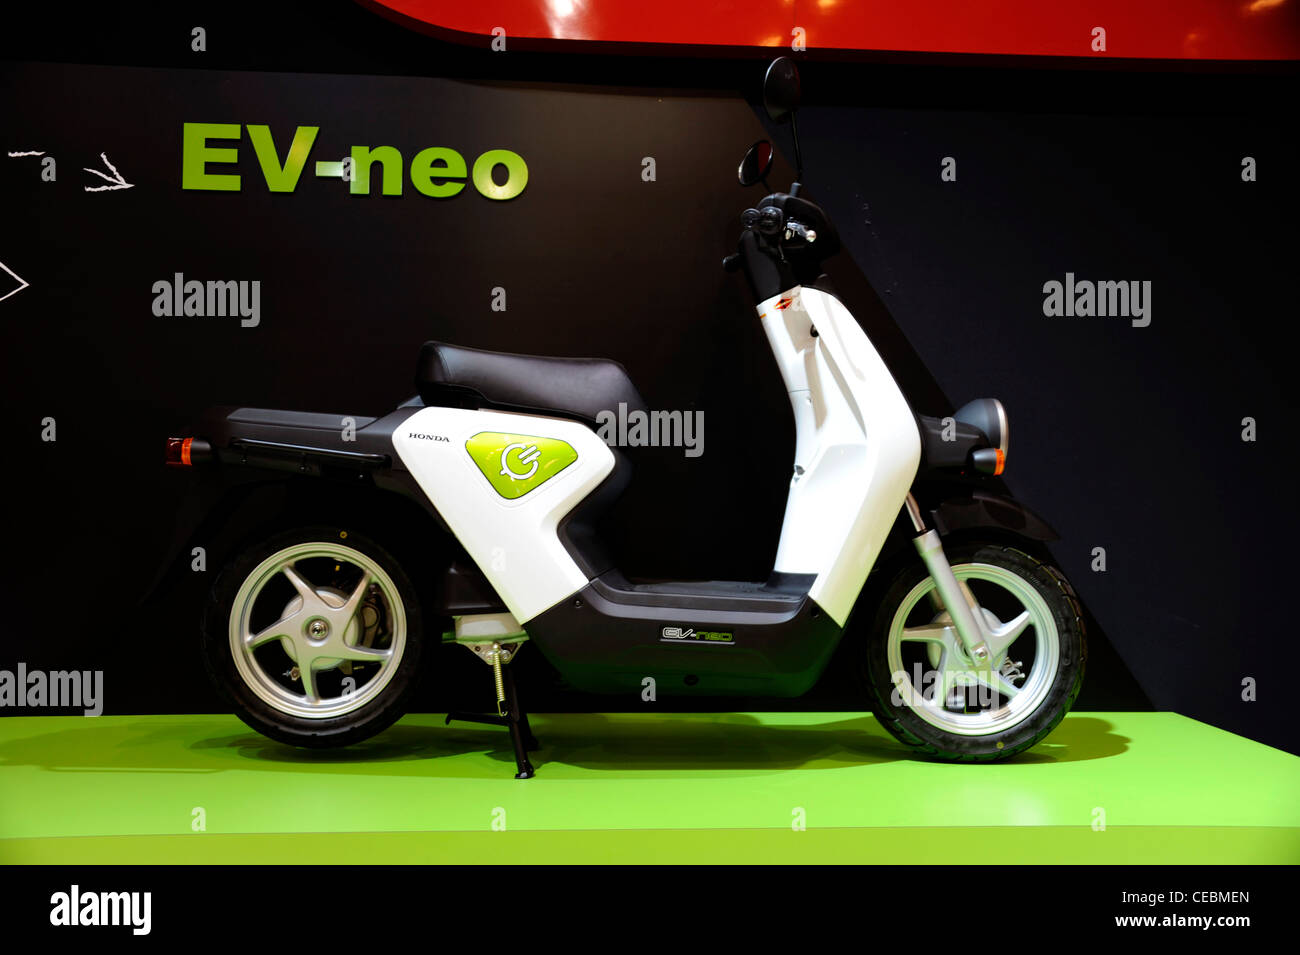 Honda Scooterev Neojapan Electric Bike Zero Emissionparis Stock